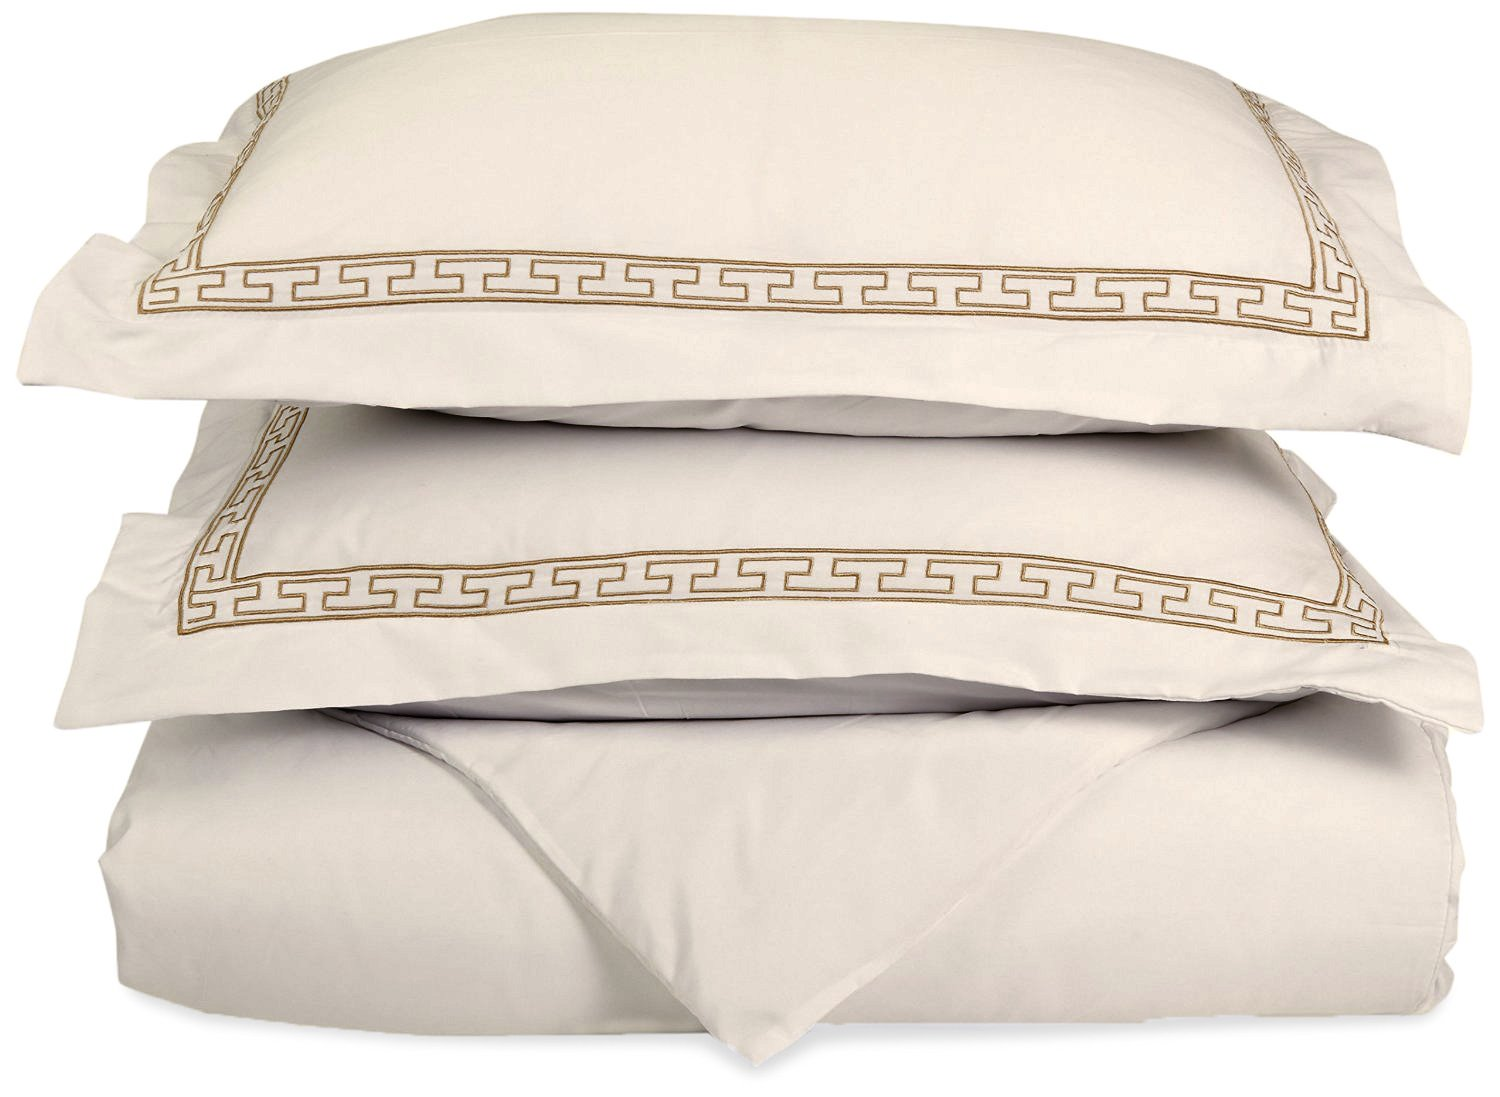 Super Soft Light Weight,100% Brushed Microfiber, King/California King, Wrinkle Resistant, Ivory Duvet Cover with Taupe Regal Embroidered Pillowshams in Gift Box